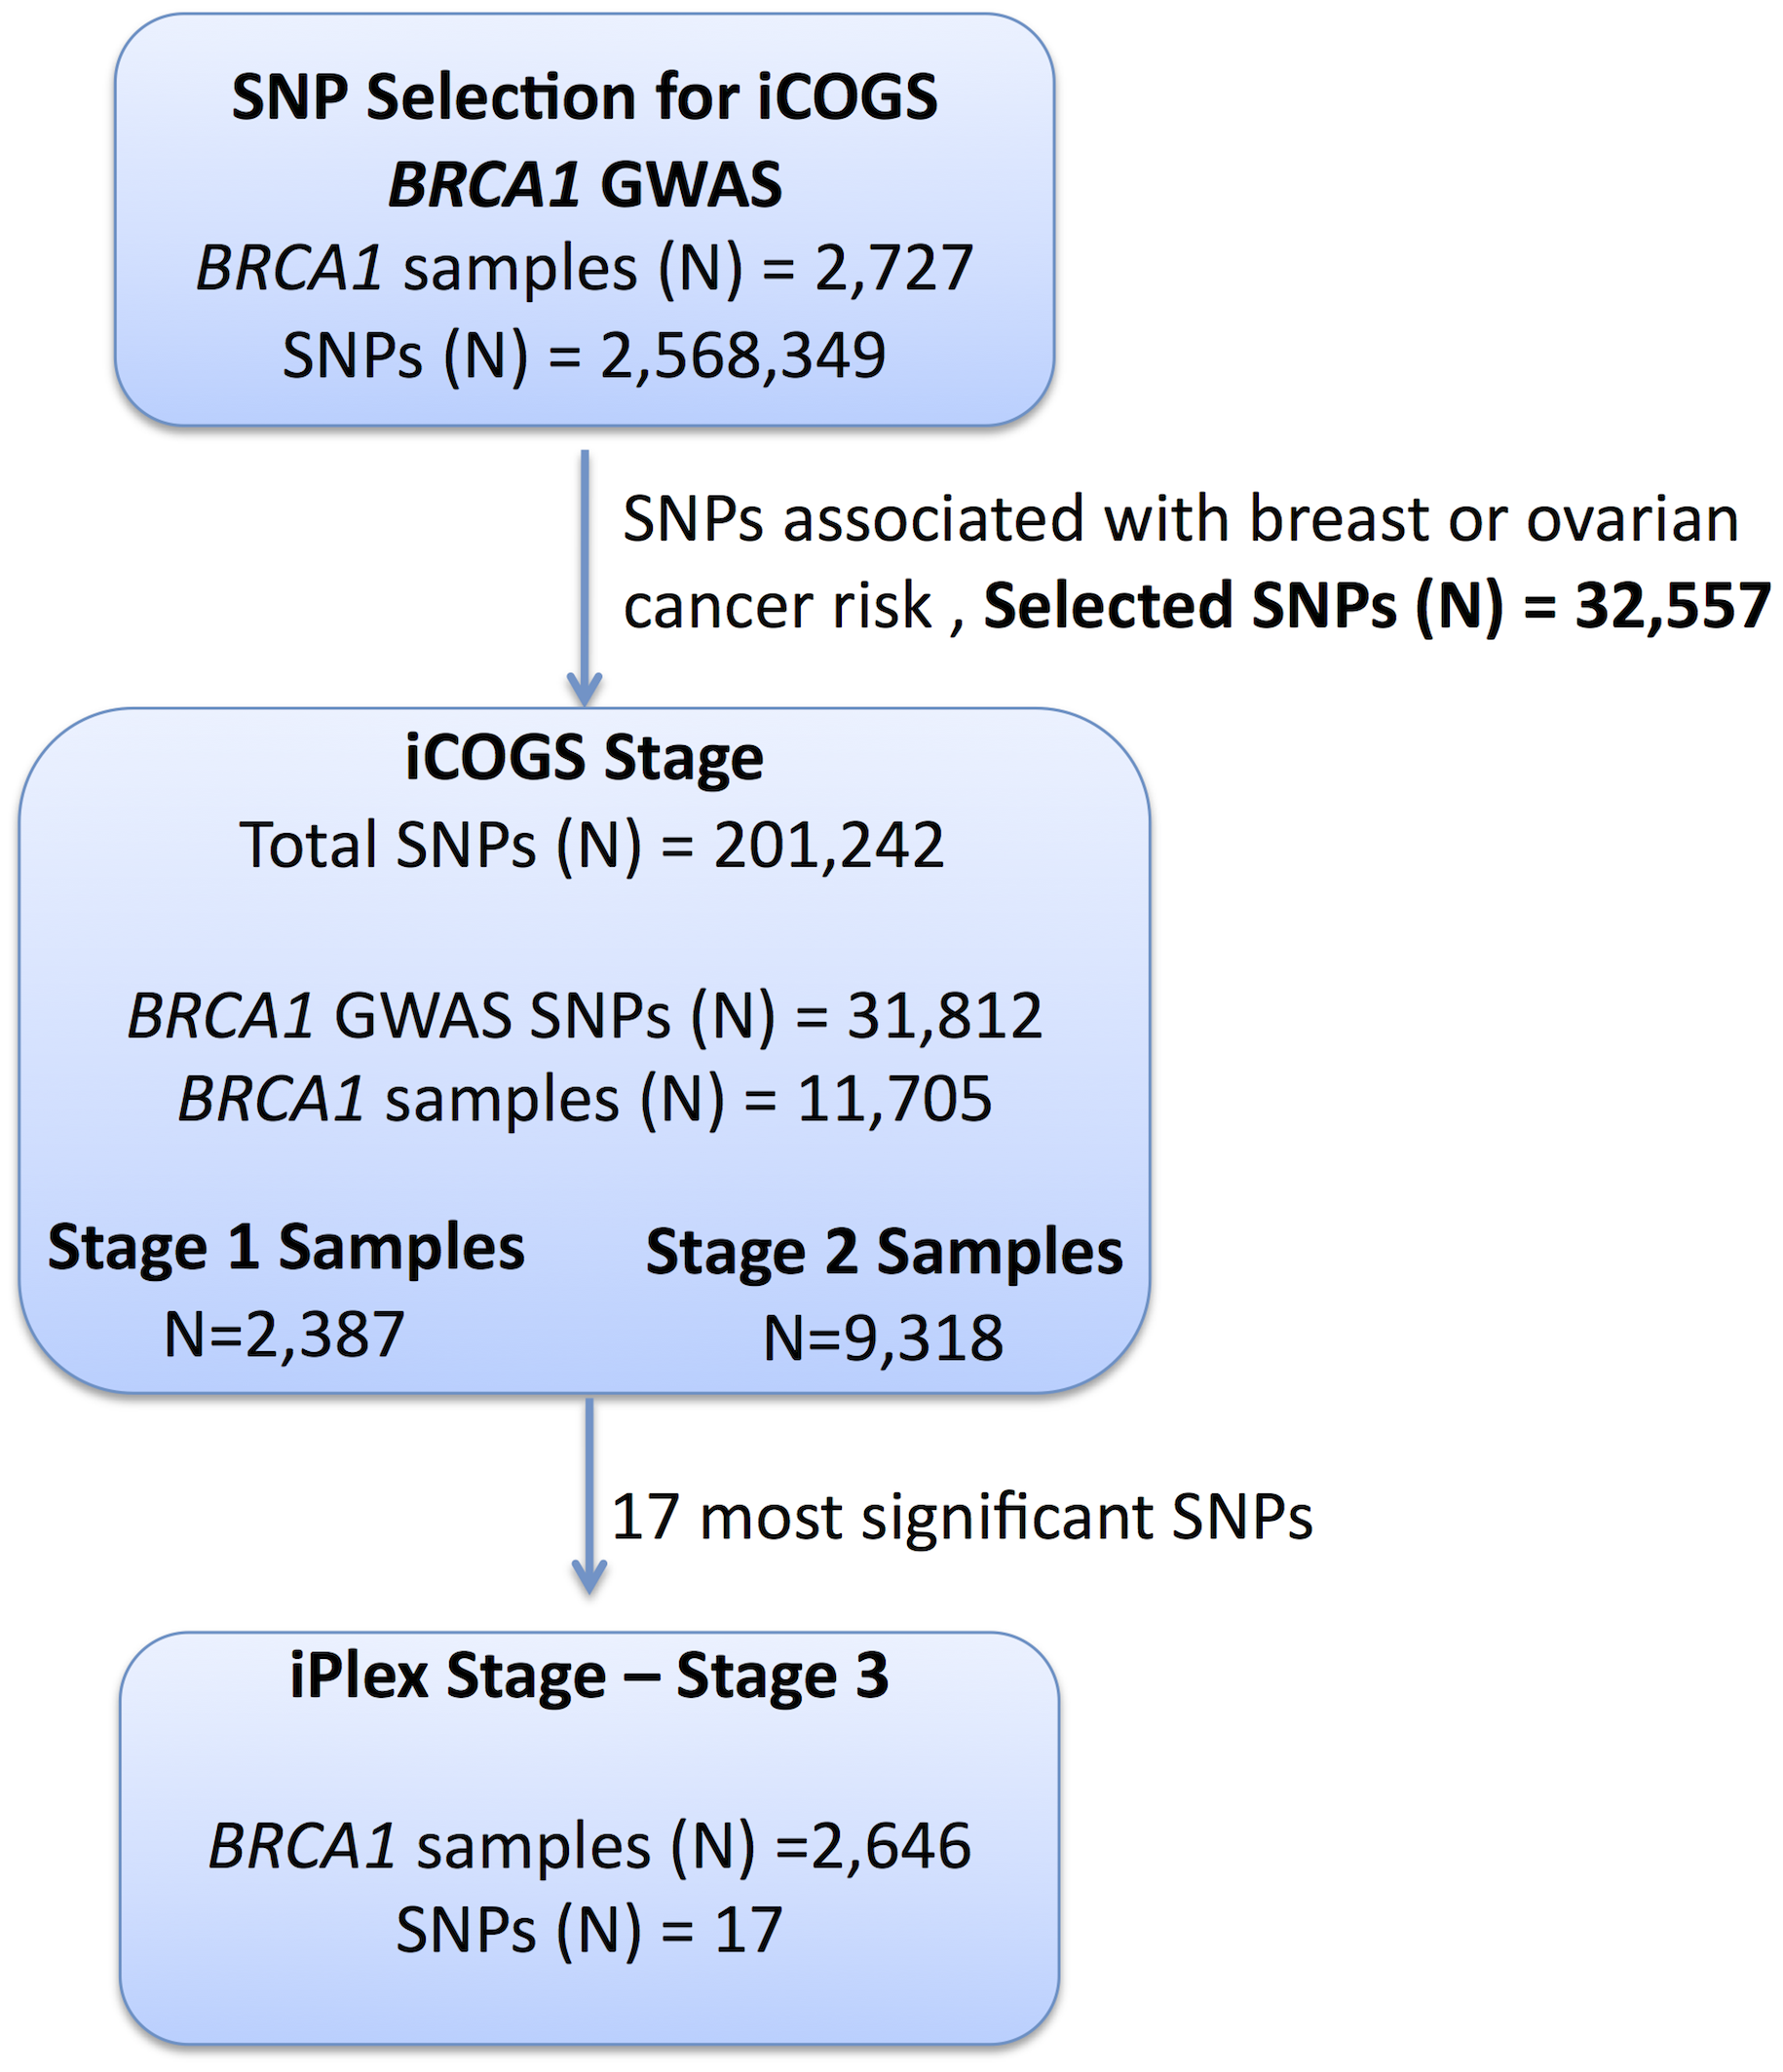 Study design for selection of the SNPs and genotyping of <i>BRCA1</i> samples.